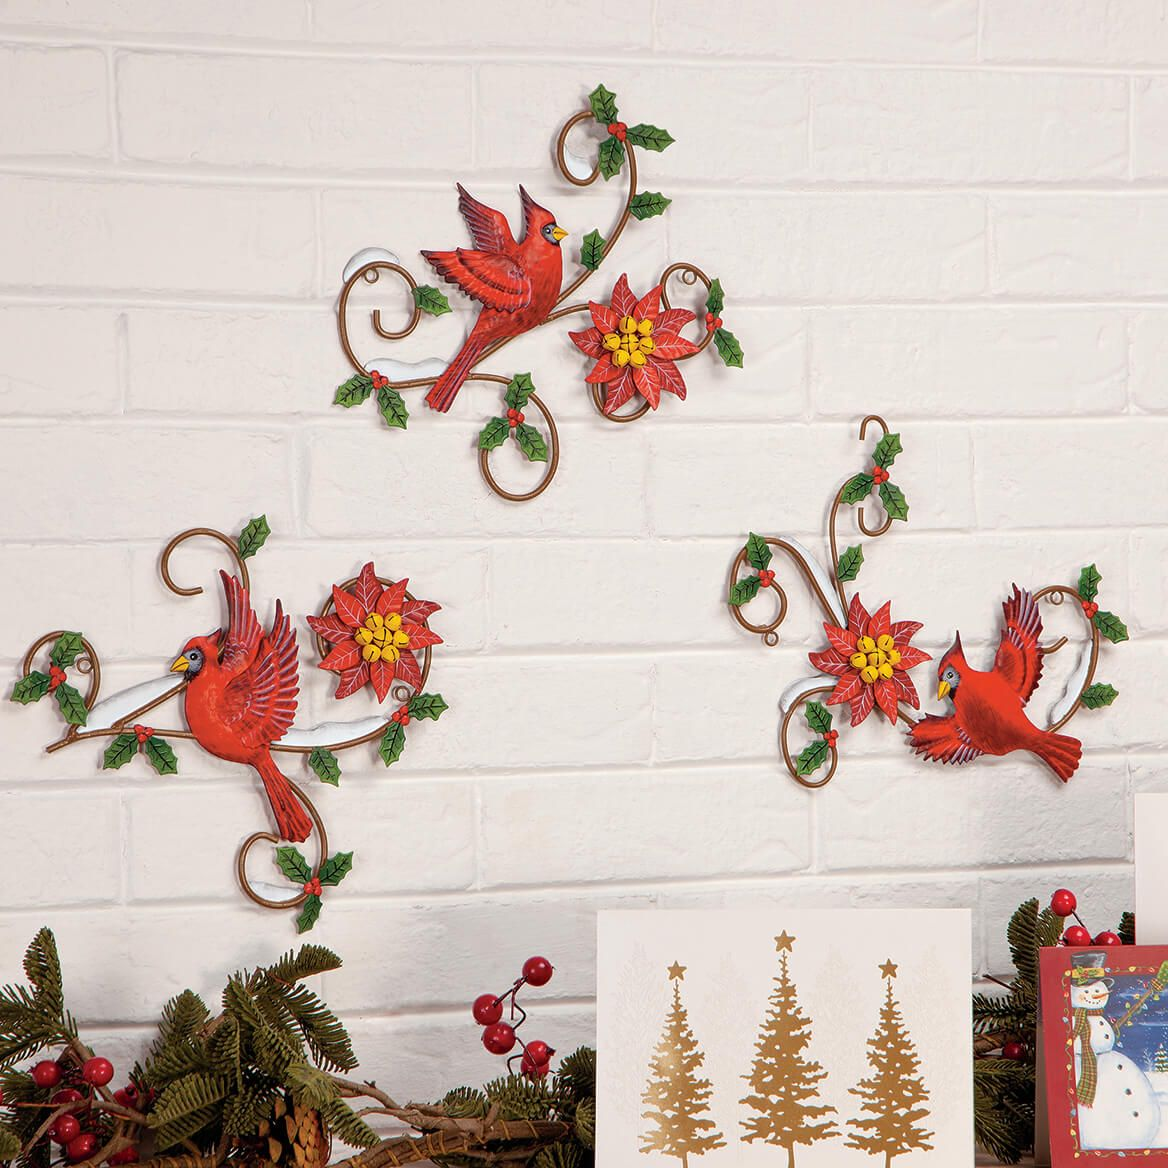 Metal Christmas Cardinal Plaques by Fox River™ Creations, Set of 3-369543